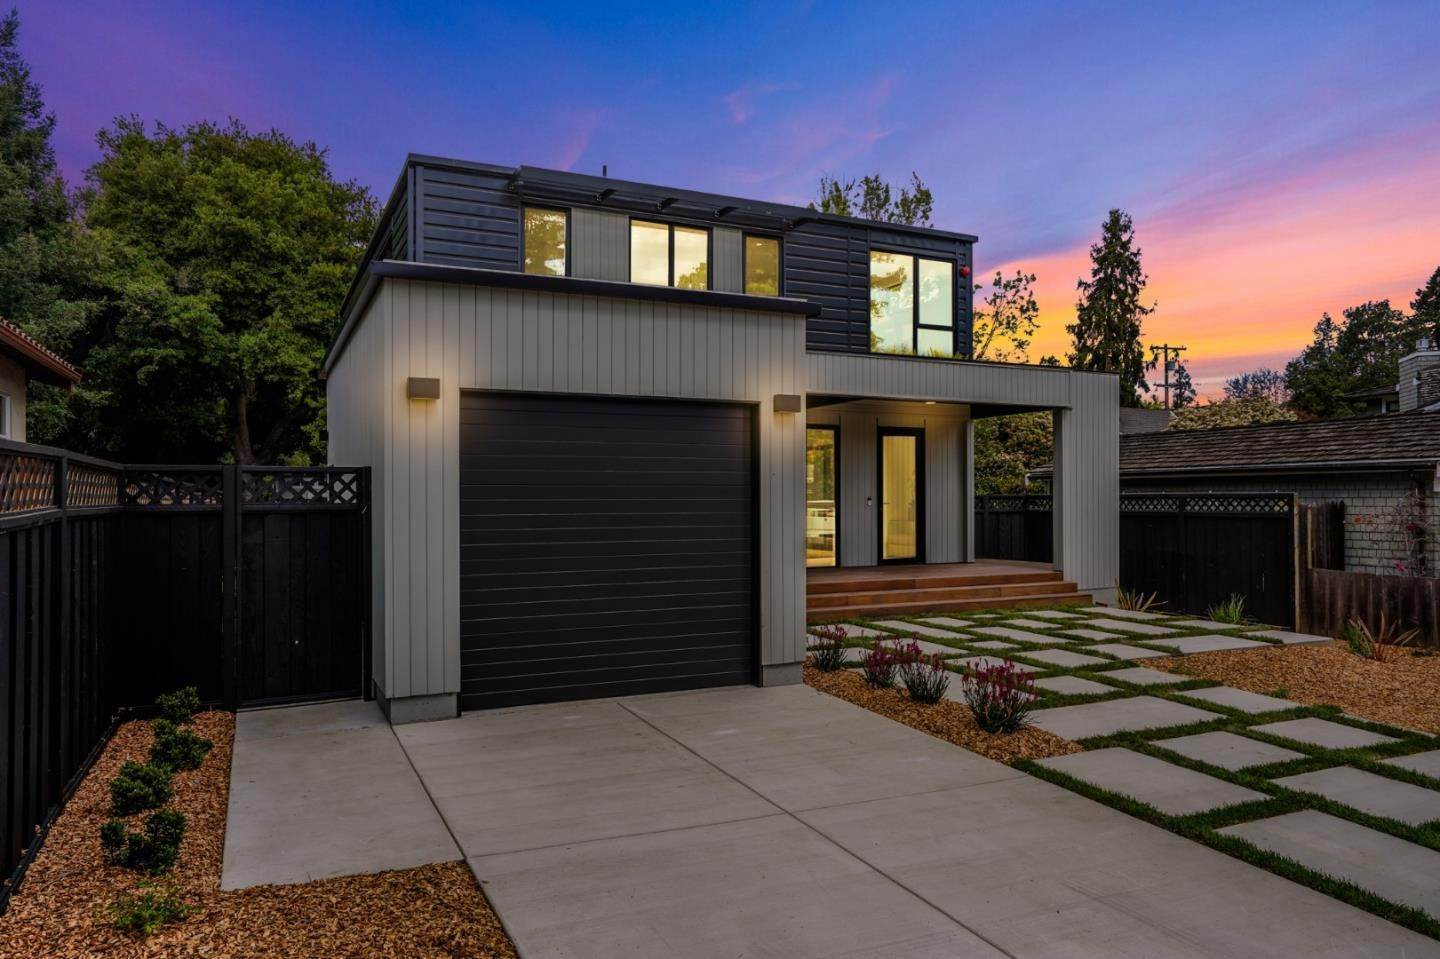 Single Family Homes for Sale at 119 Baywood Avenue Menlo Park, California 94025 United States